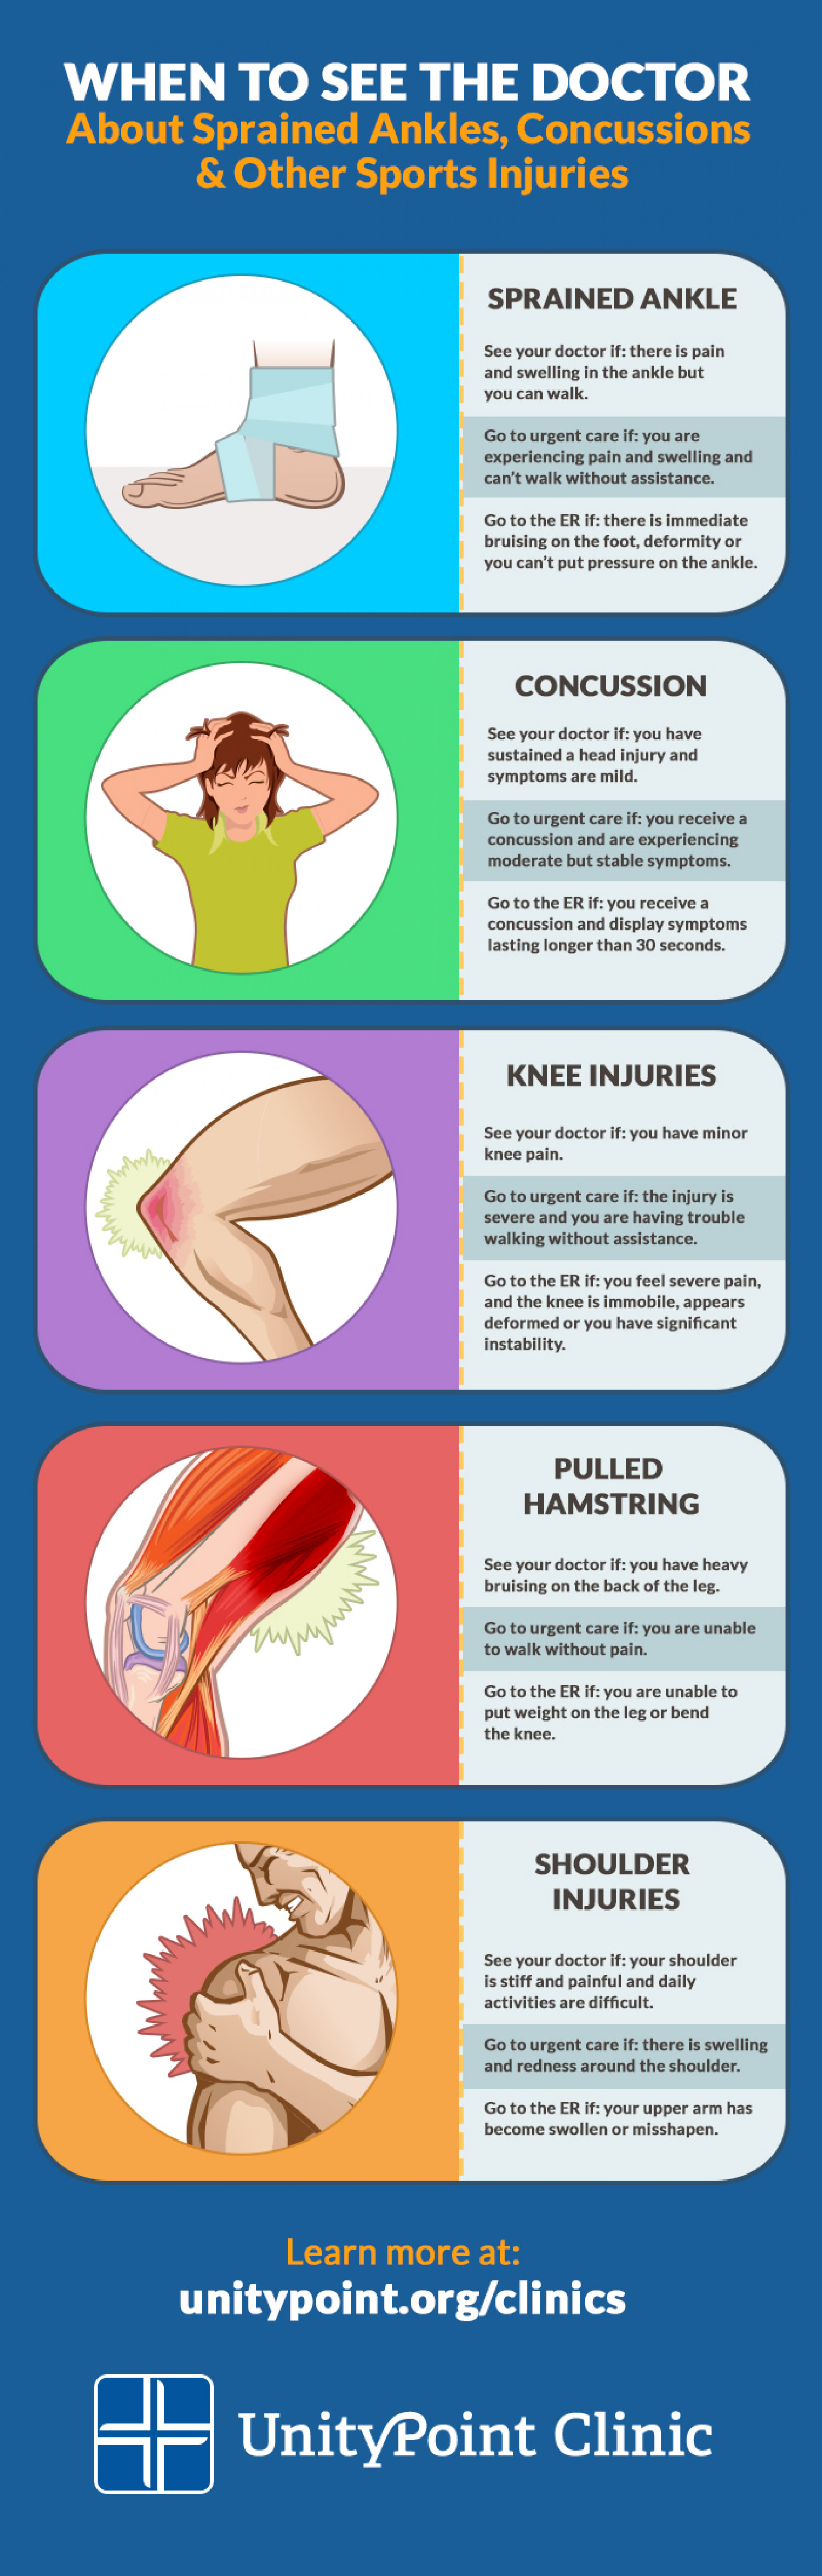 When to See the Doctor About Sprained Ankles, Concussions & Other Sports Injuries Infographic